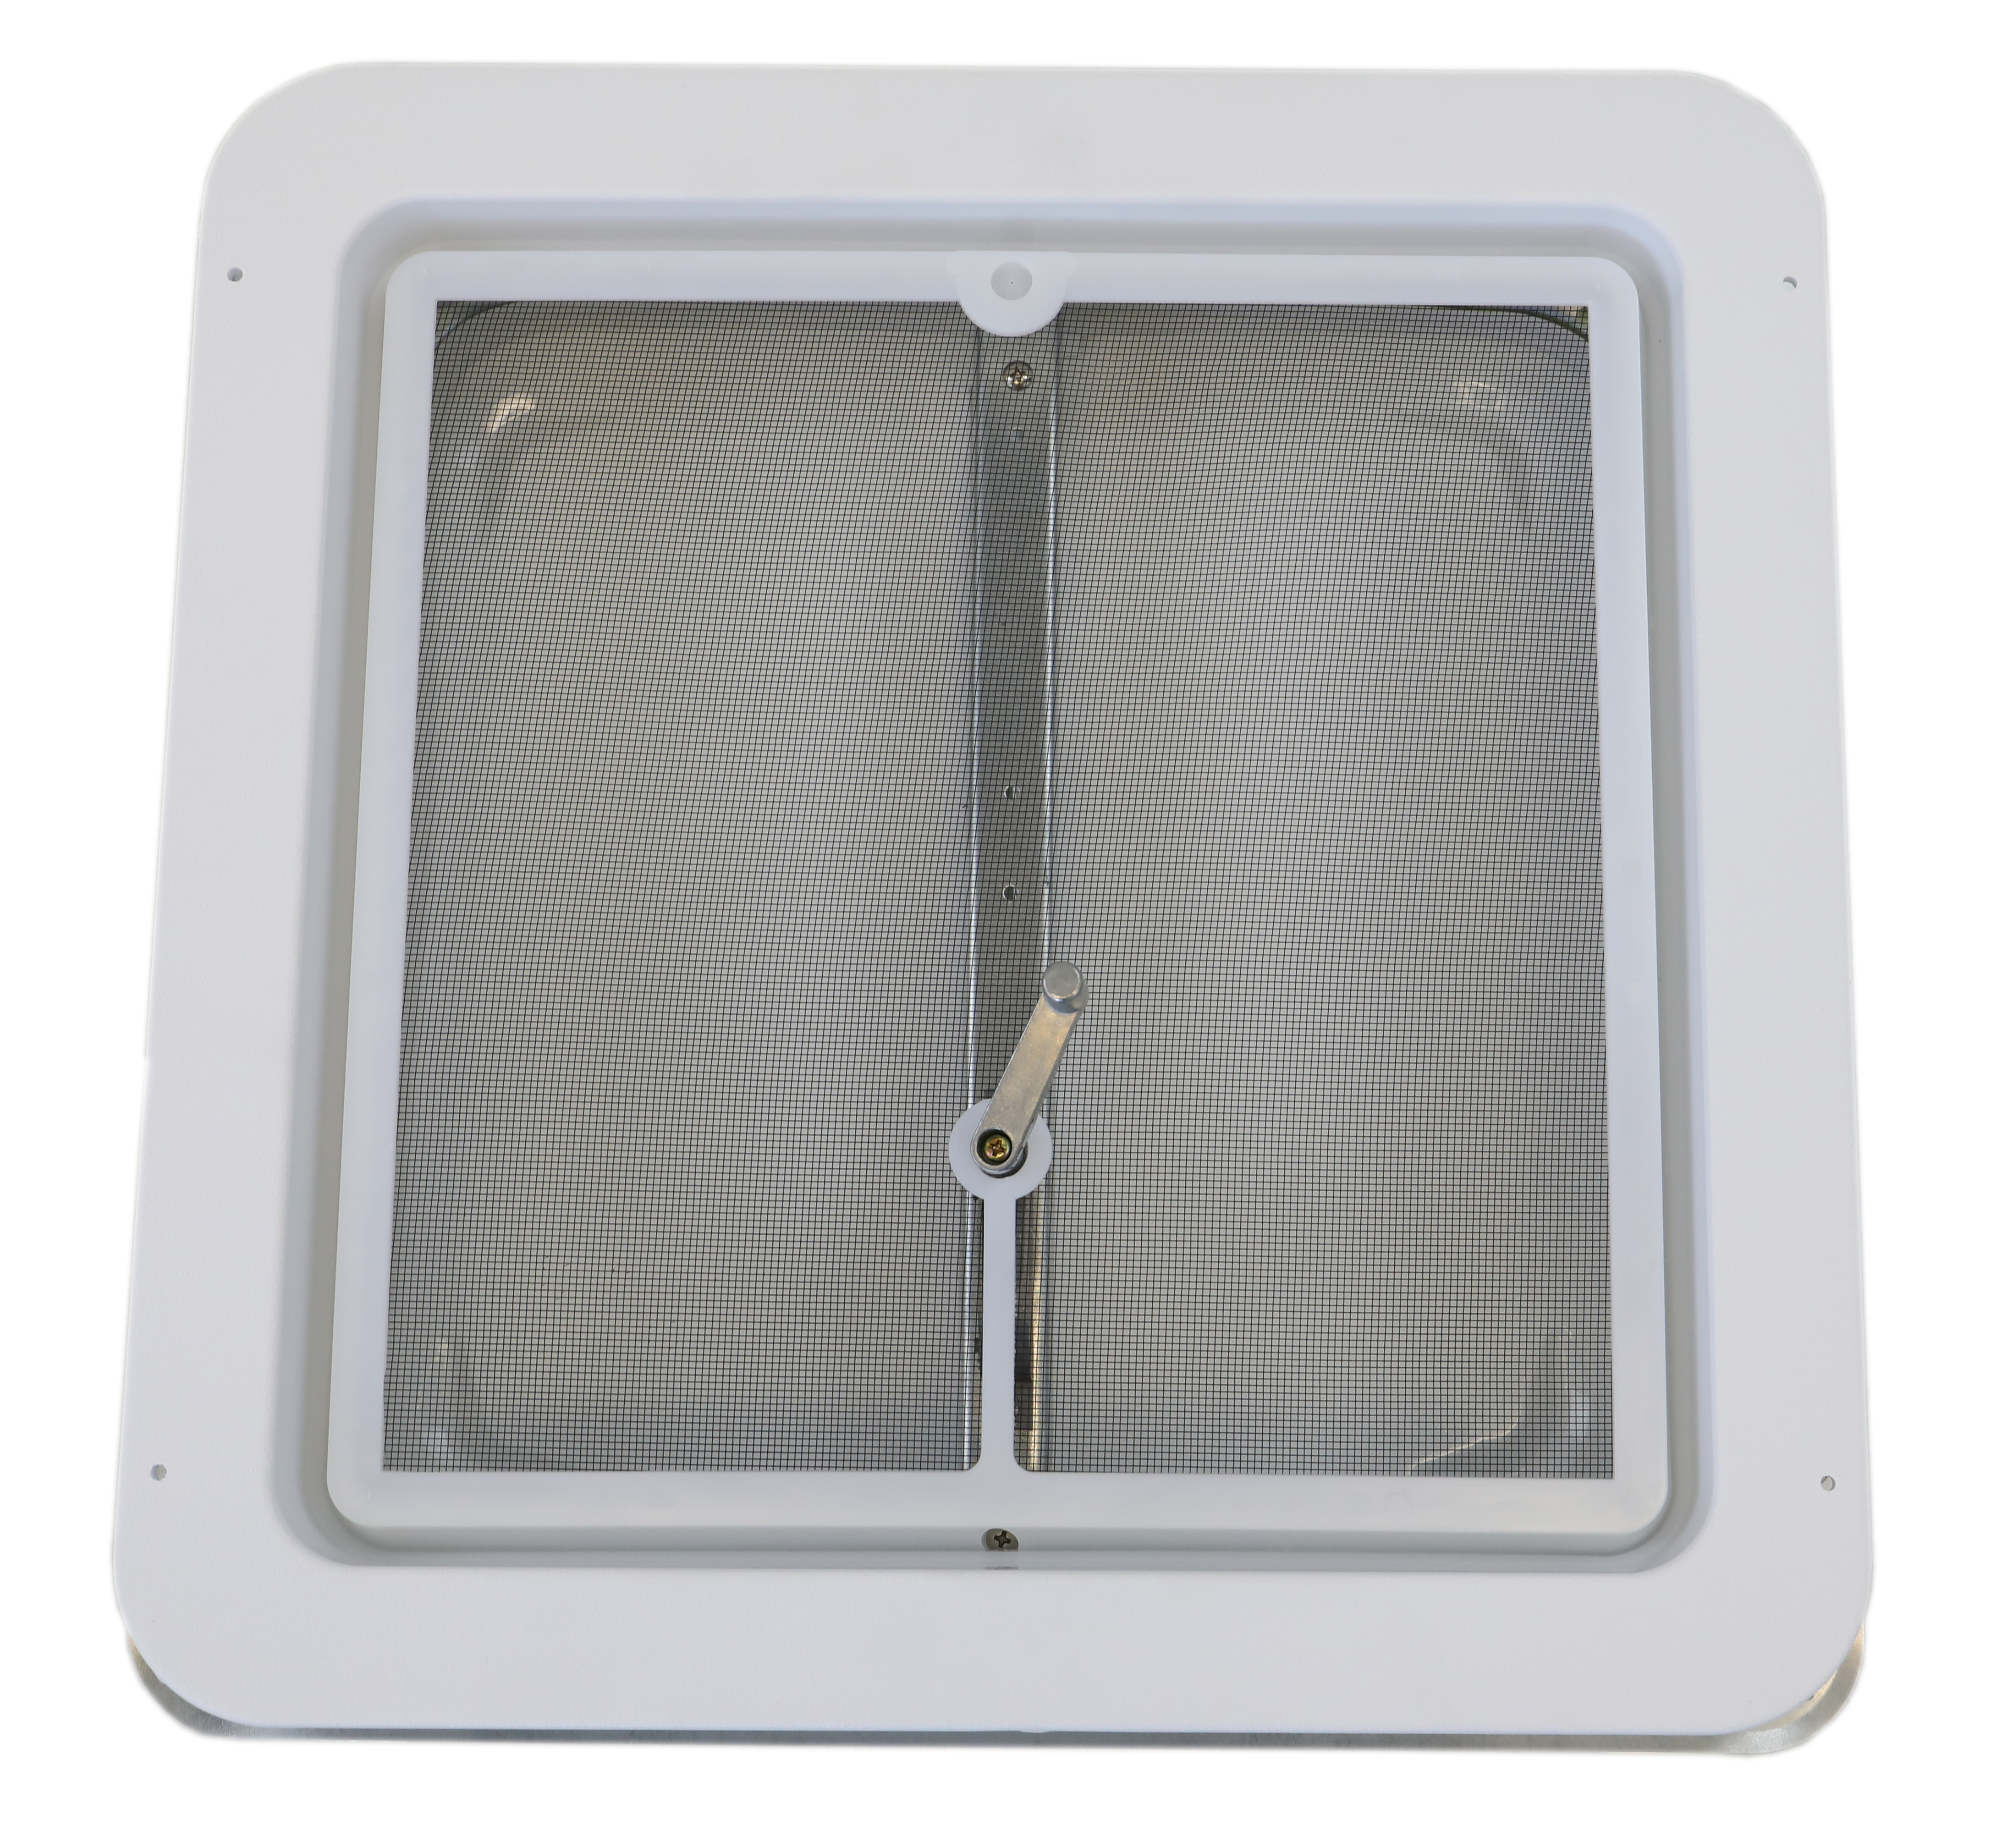 Cac85111 Wh Class A Customs 14 Quot Rv Roof Vent With Low